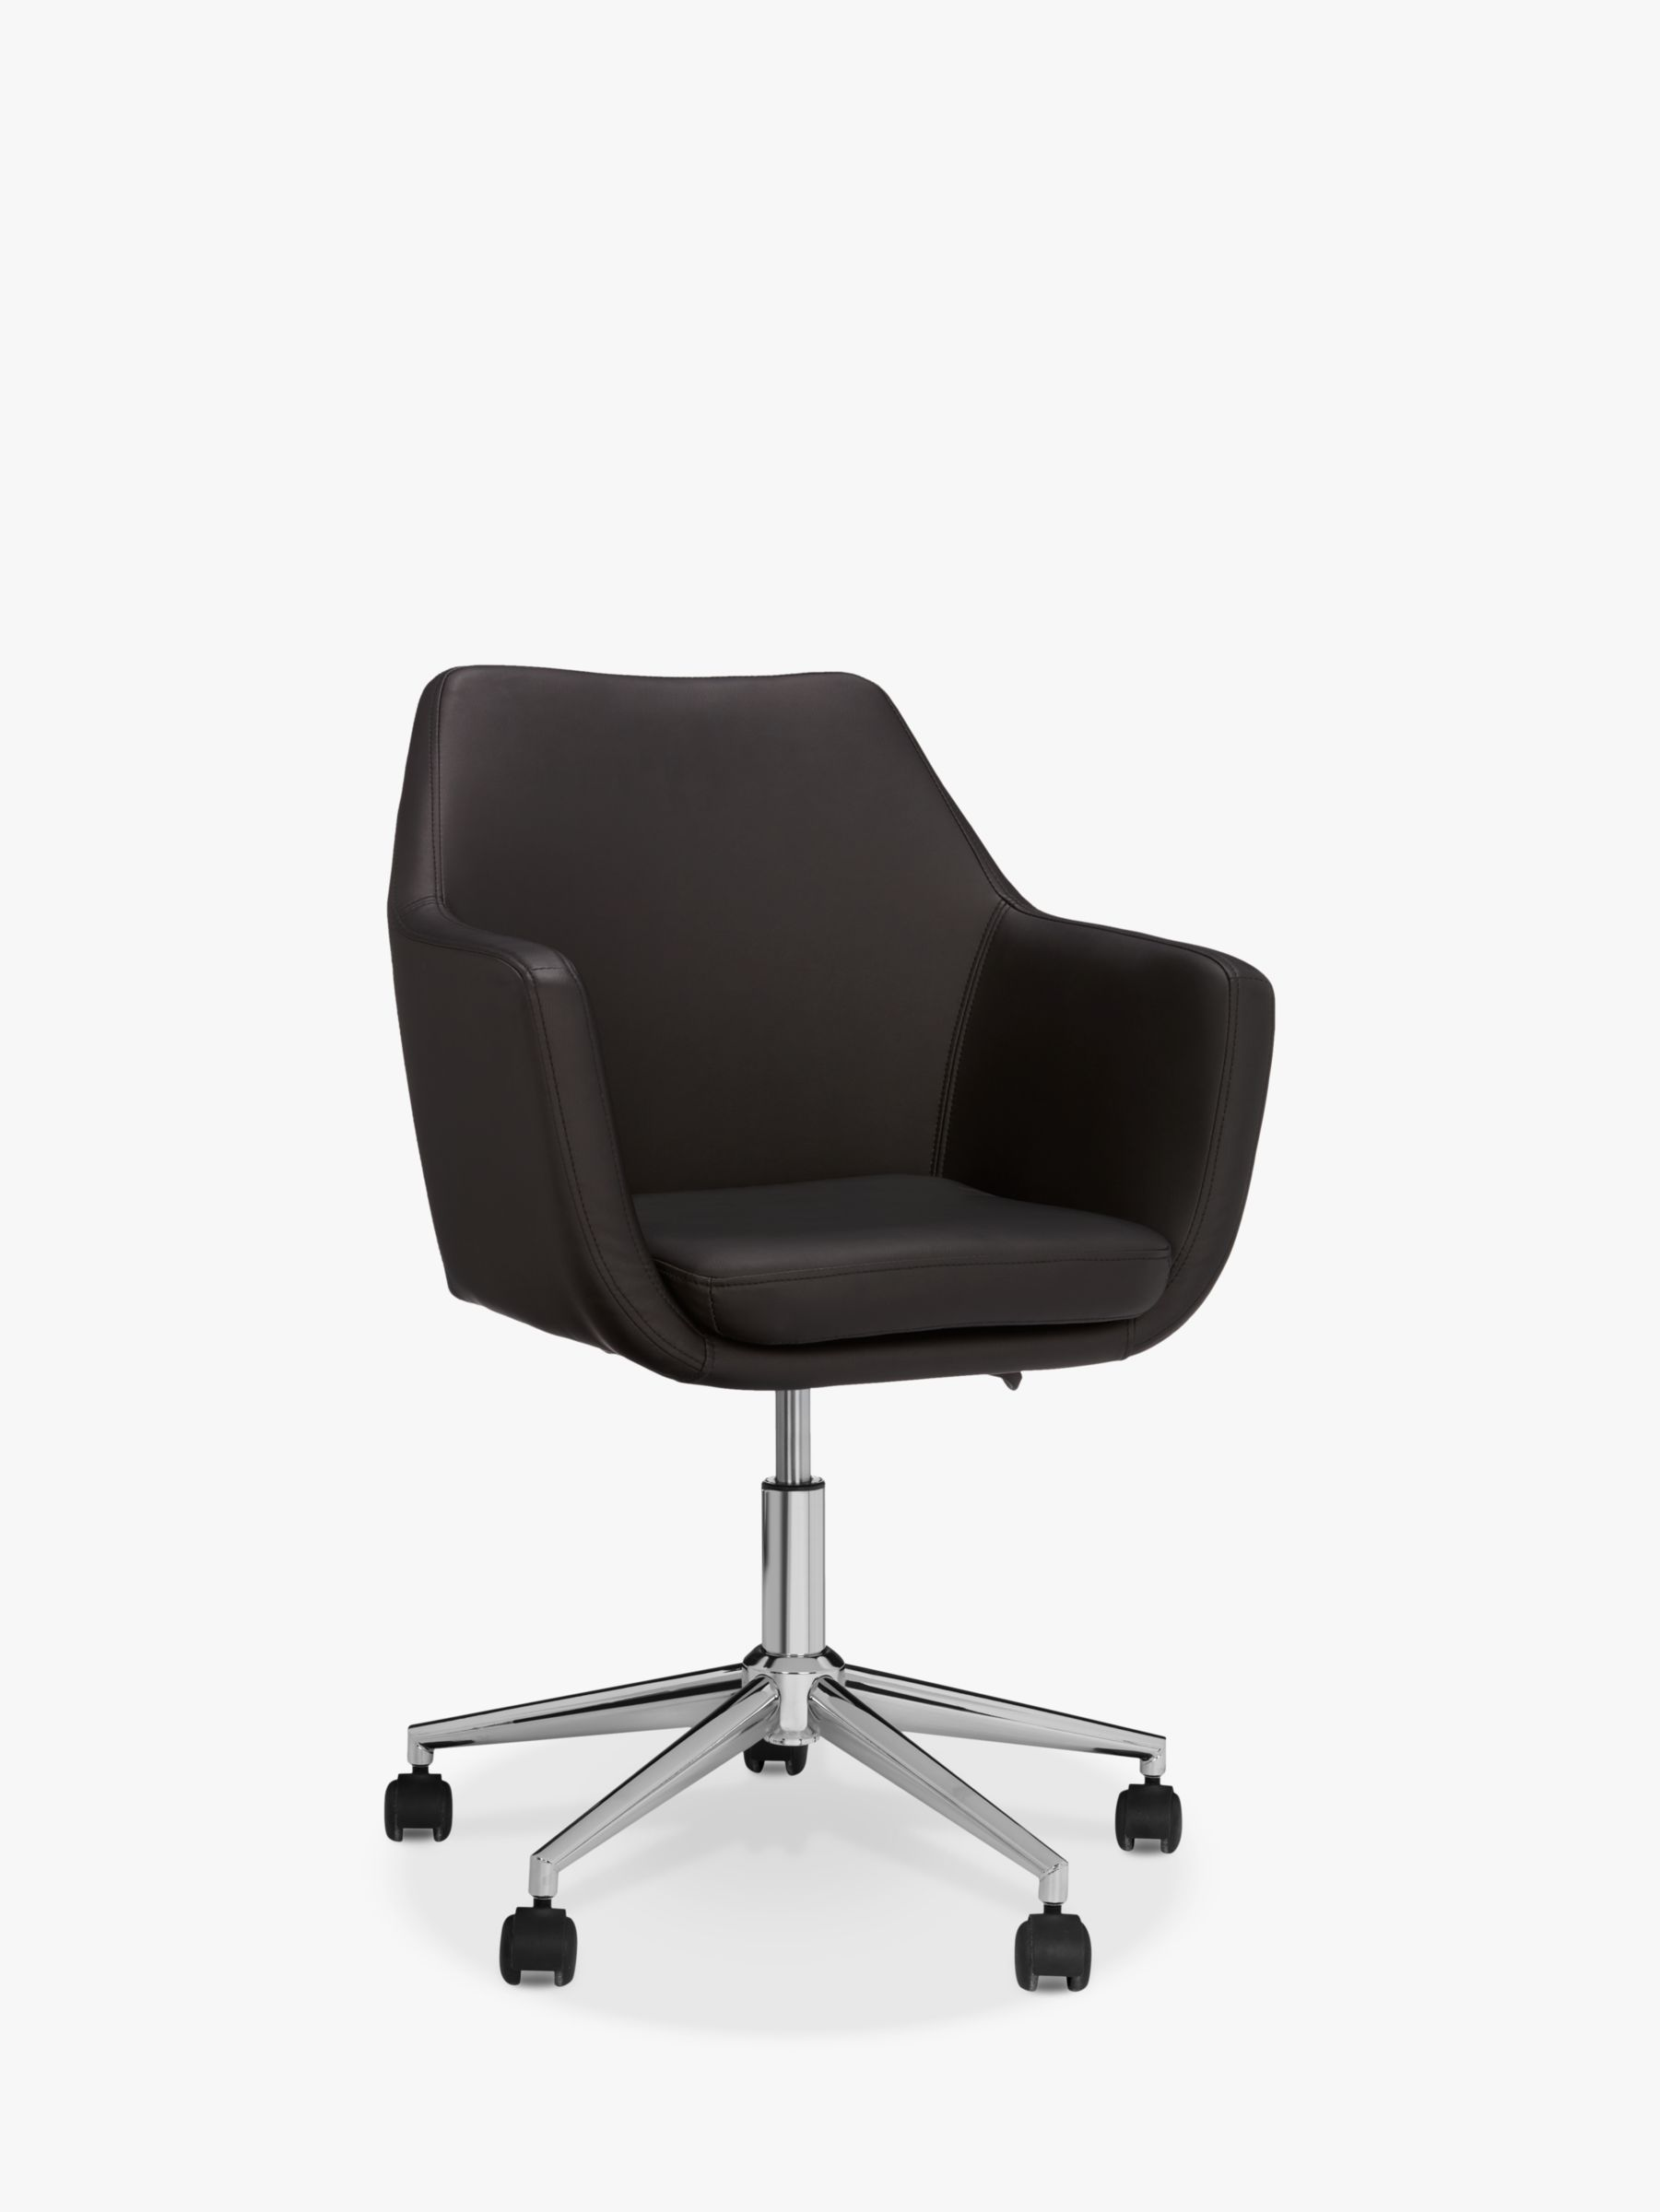 John Lewis Partners Reid Faux Leather Office Chair At John Lewis Partners